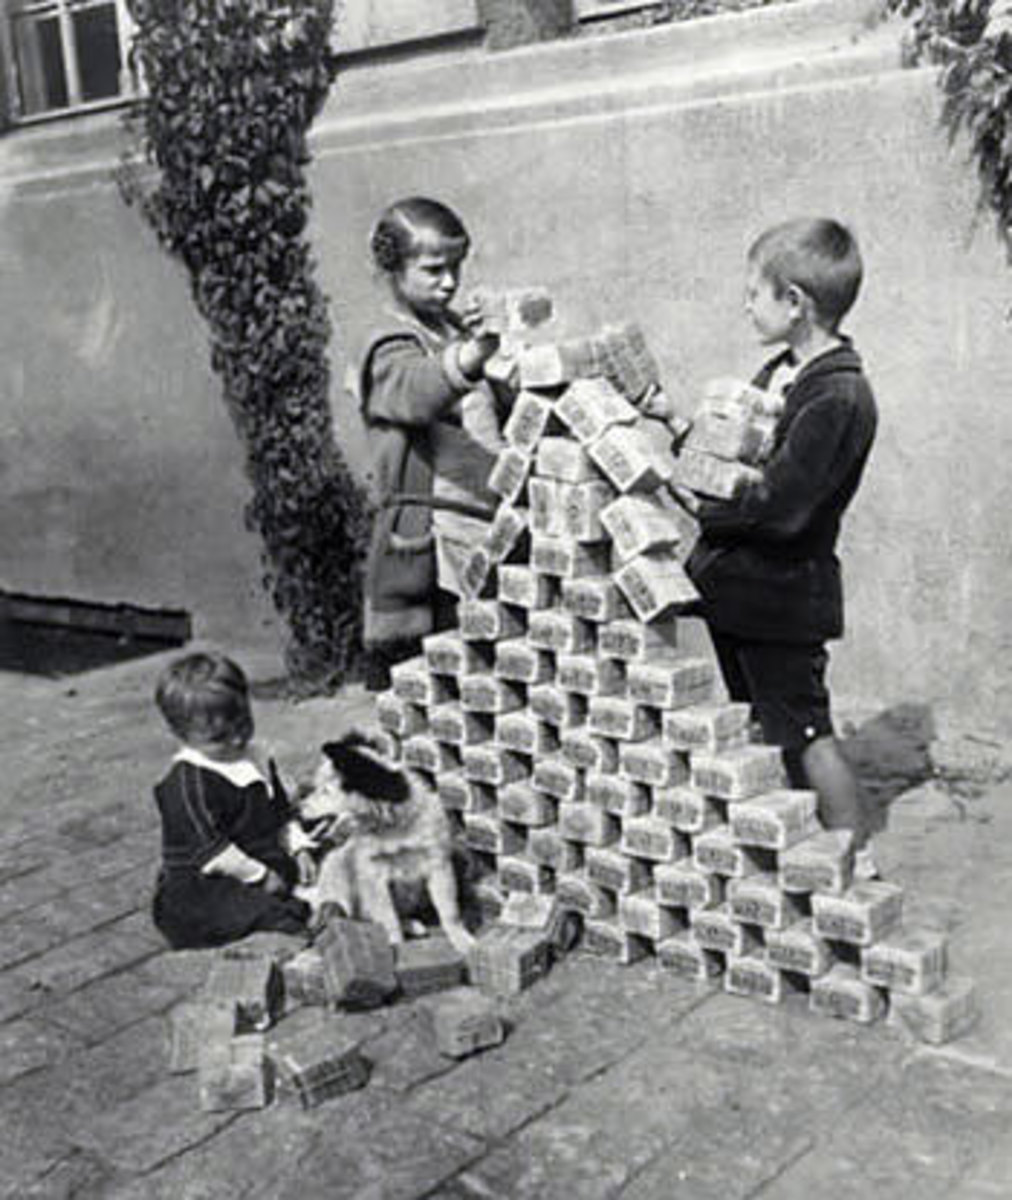 Germany inflation  during the Great Depression.